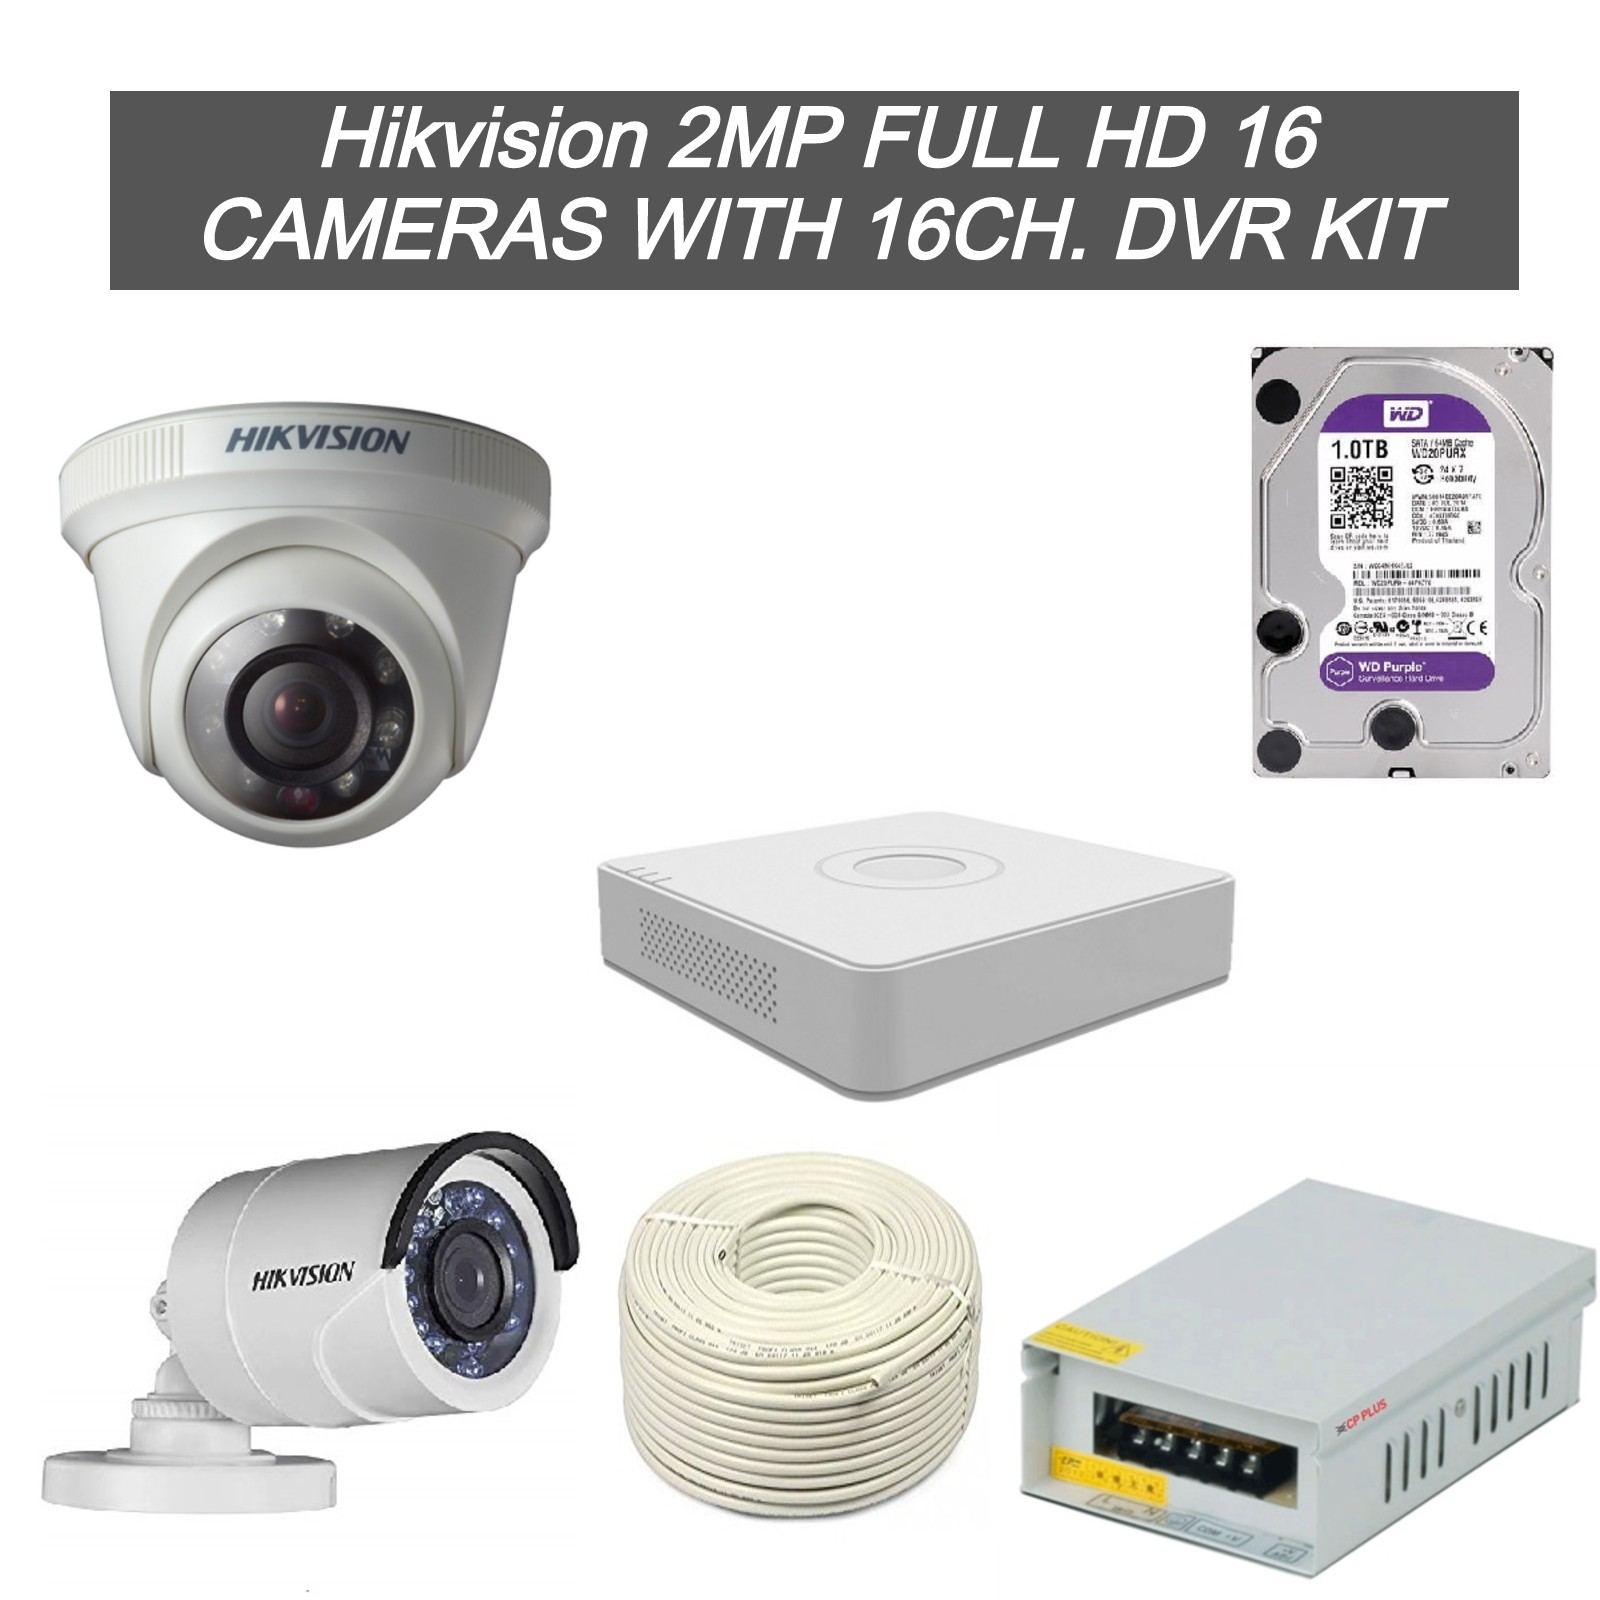 Hikvision 2MP Full HD 16 CCTV Cameras with 16Ch. DVR Kit